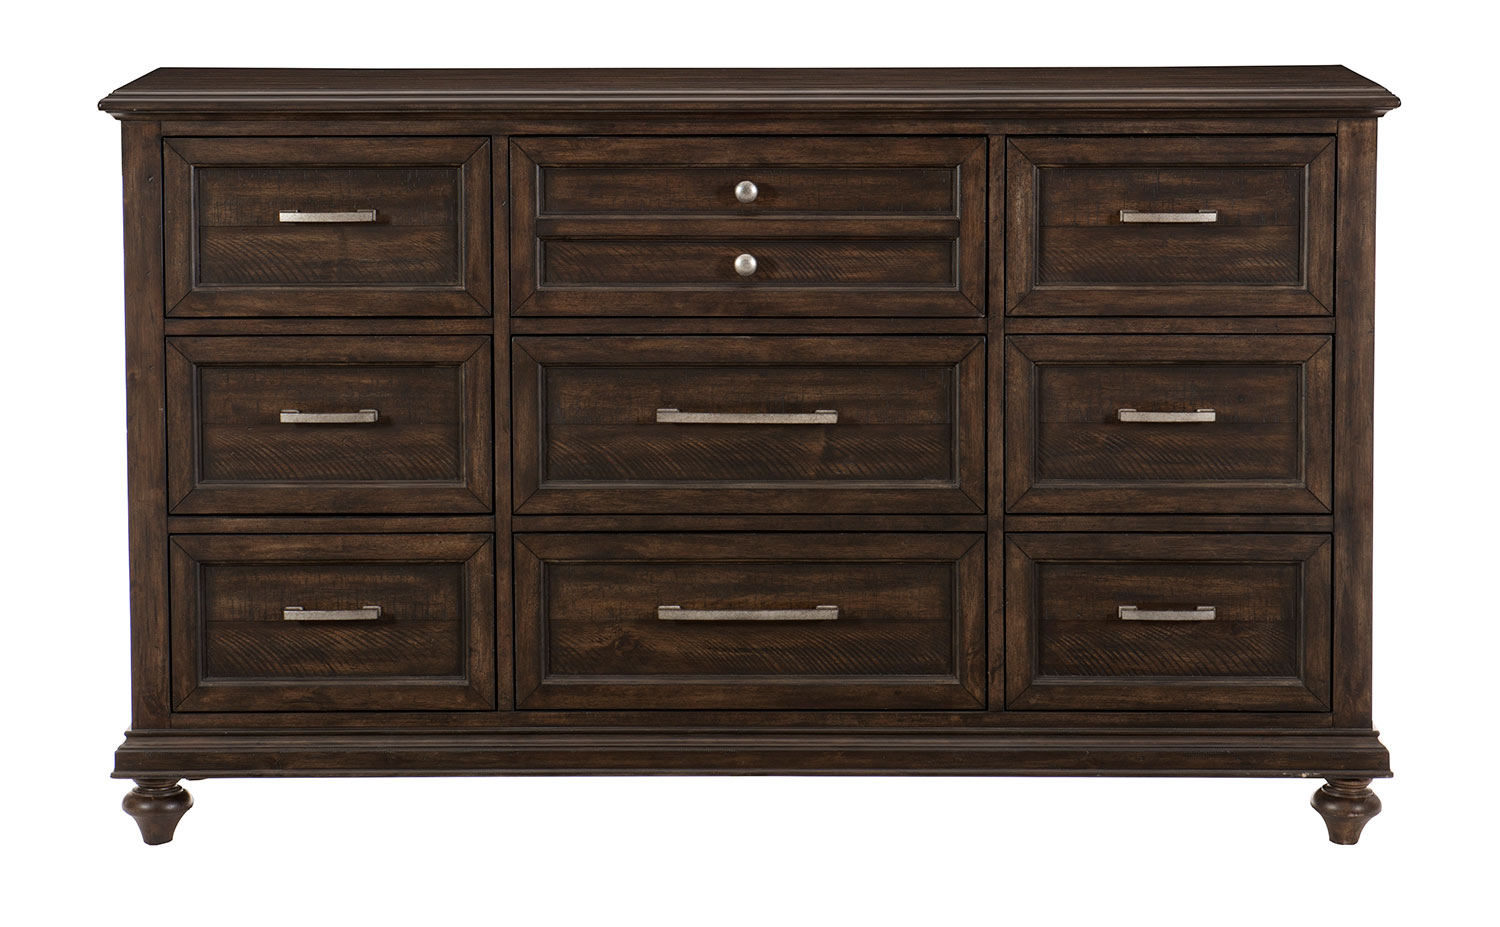 Homelegance Cardano Dresser - Driftwood Charcoal over Acacia Solids and Veneers